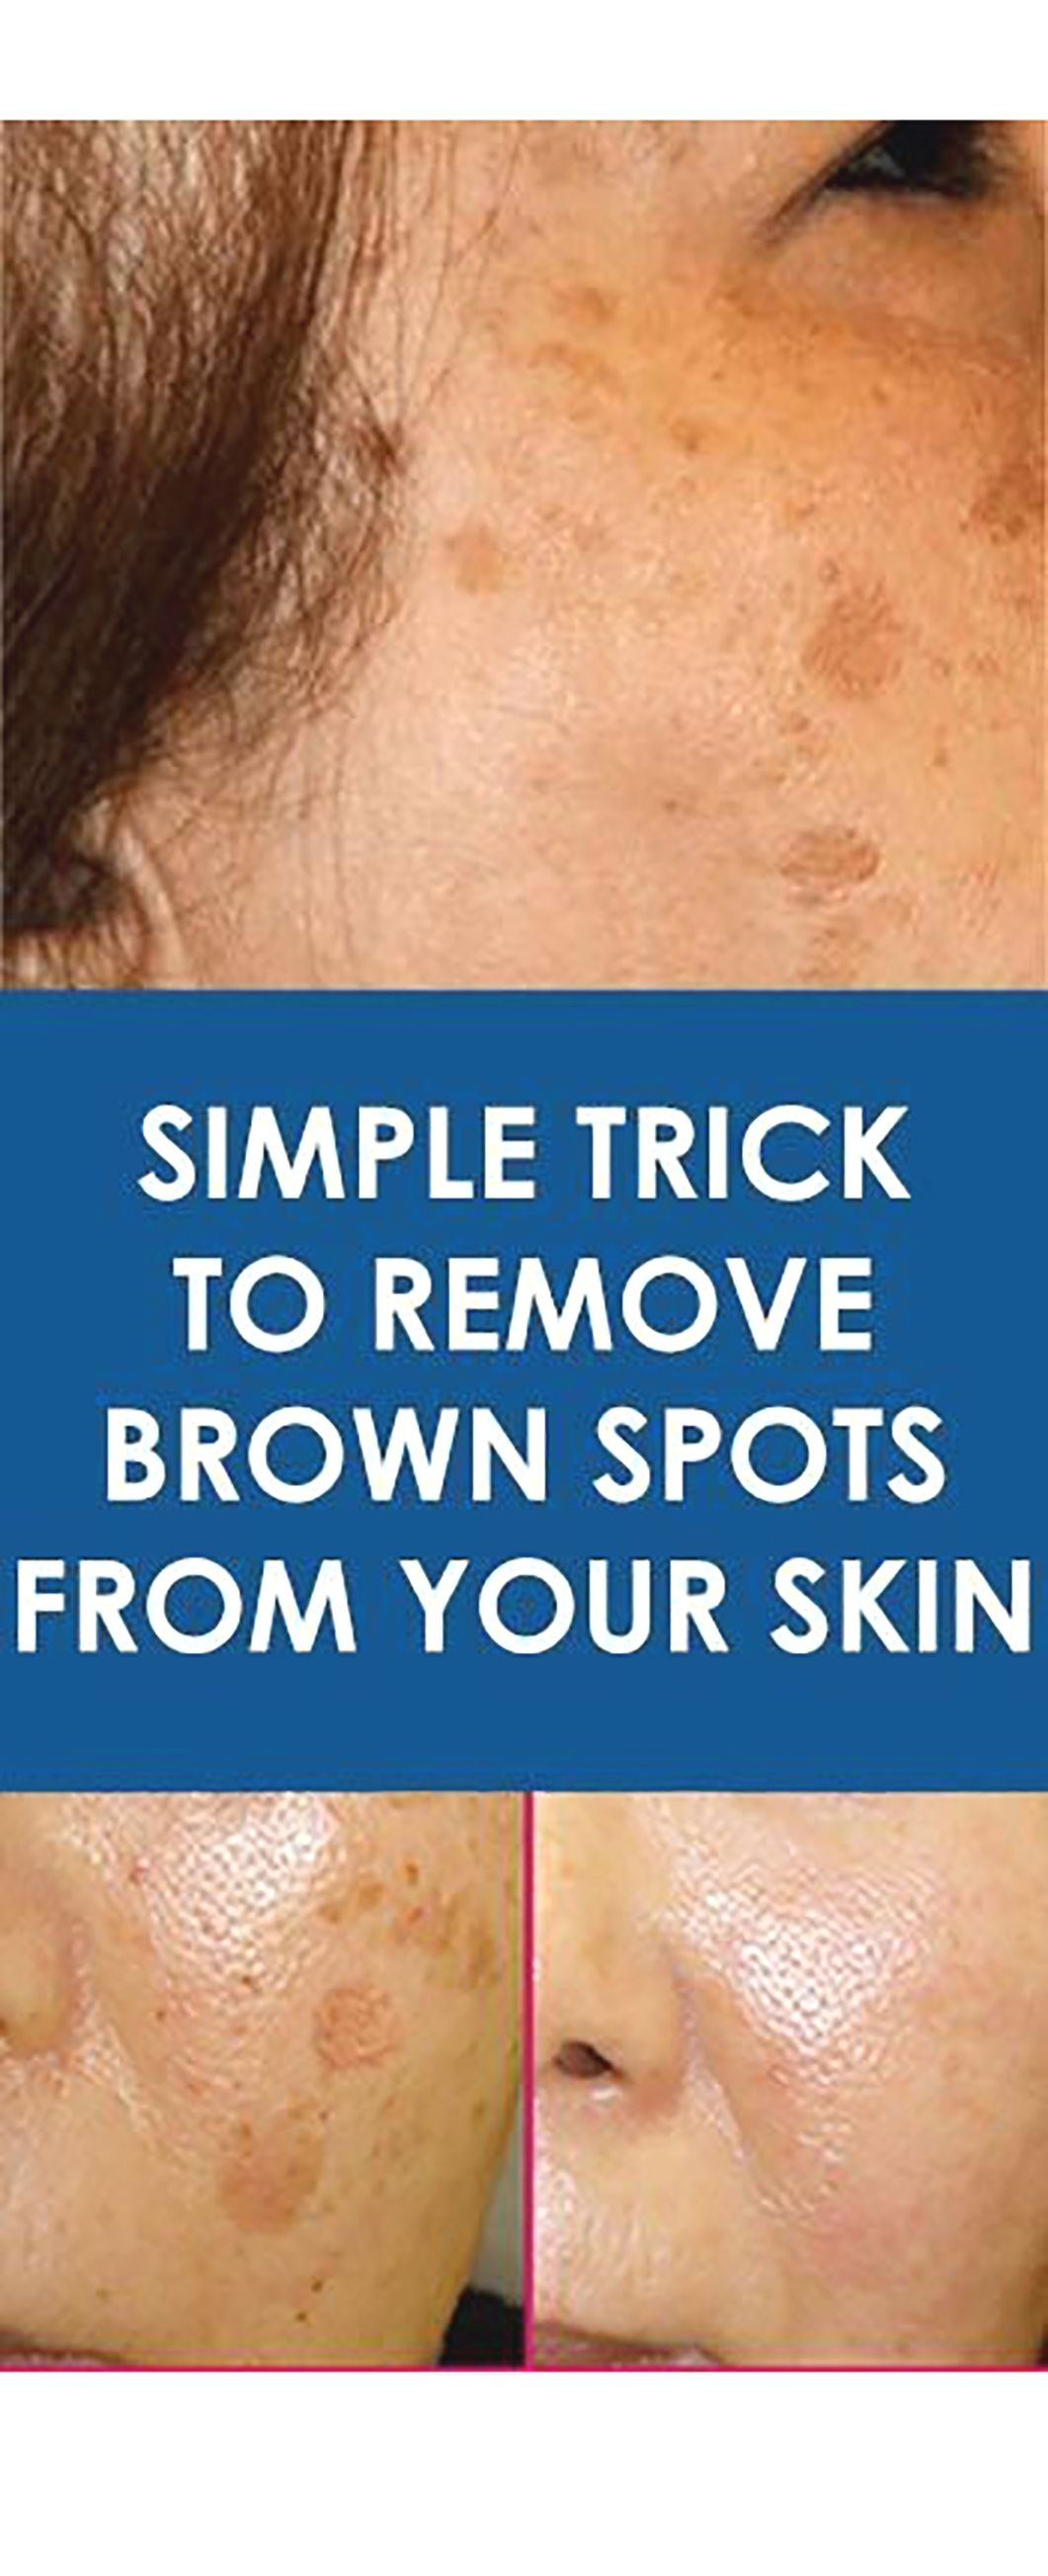 Simple Trick To Remove Brown Spots From Your Skin Brown Spots On Skin Spots On Face Brown Spots On Face